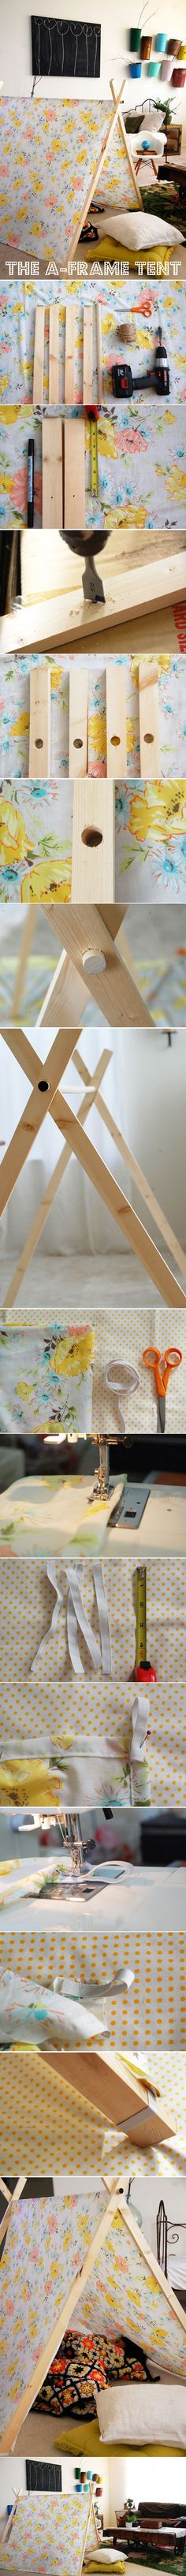 DIY Tutorial: A-Frame Tent. Made this for my boys with some modifications to make it more sturdy.